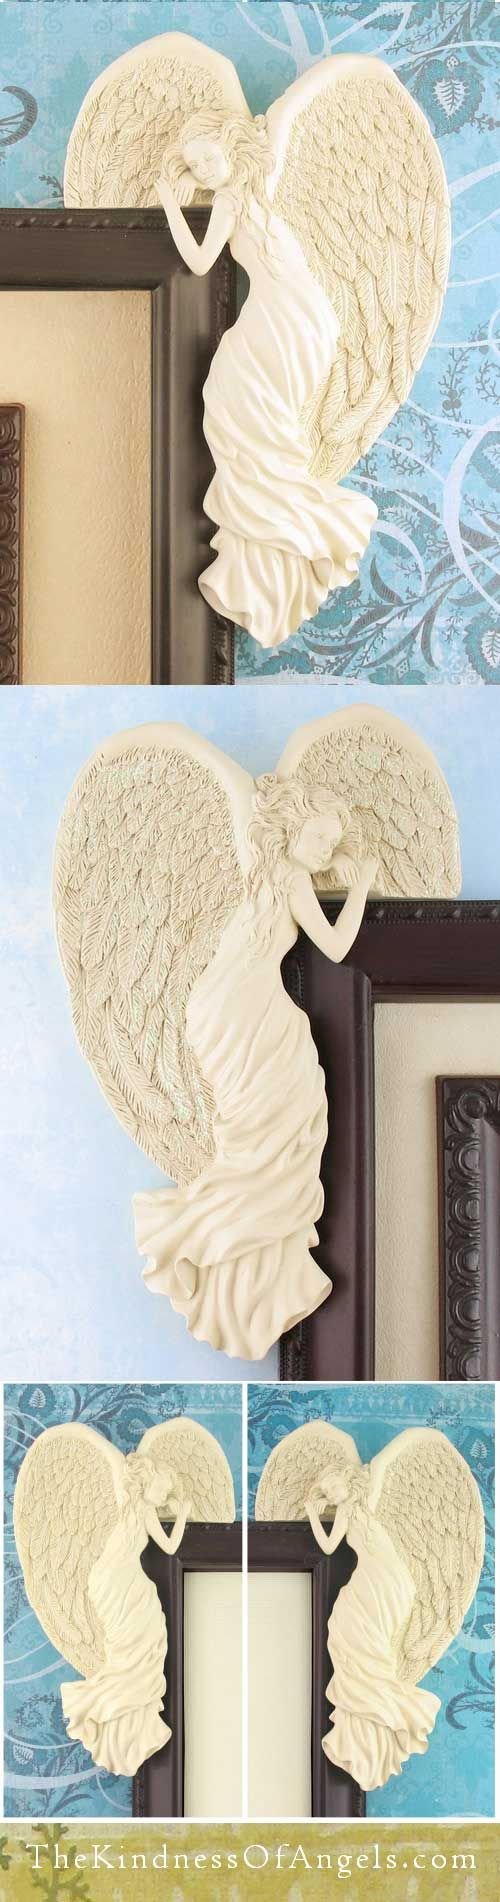 These corner angels make a lovely accent for your home, and are a comforting reminder as well that angels are watching over you. Part plaque and part figurine, these Corner Angels are designed to grace your doorway, window, mirror or large picture frame with a special reassuring touch. They have a classic beauty and are gracefully posed in long flowing robes, with realistic detailing and finely feathered wings that shimmer softly with tiny iridescent sparkles.